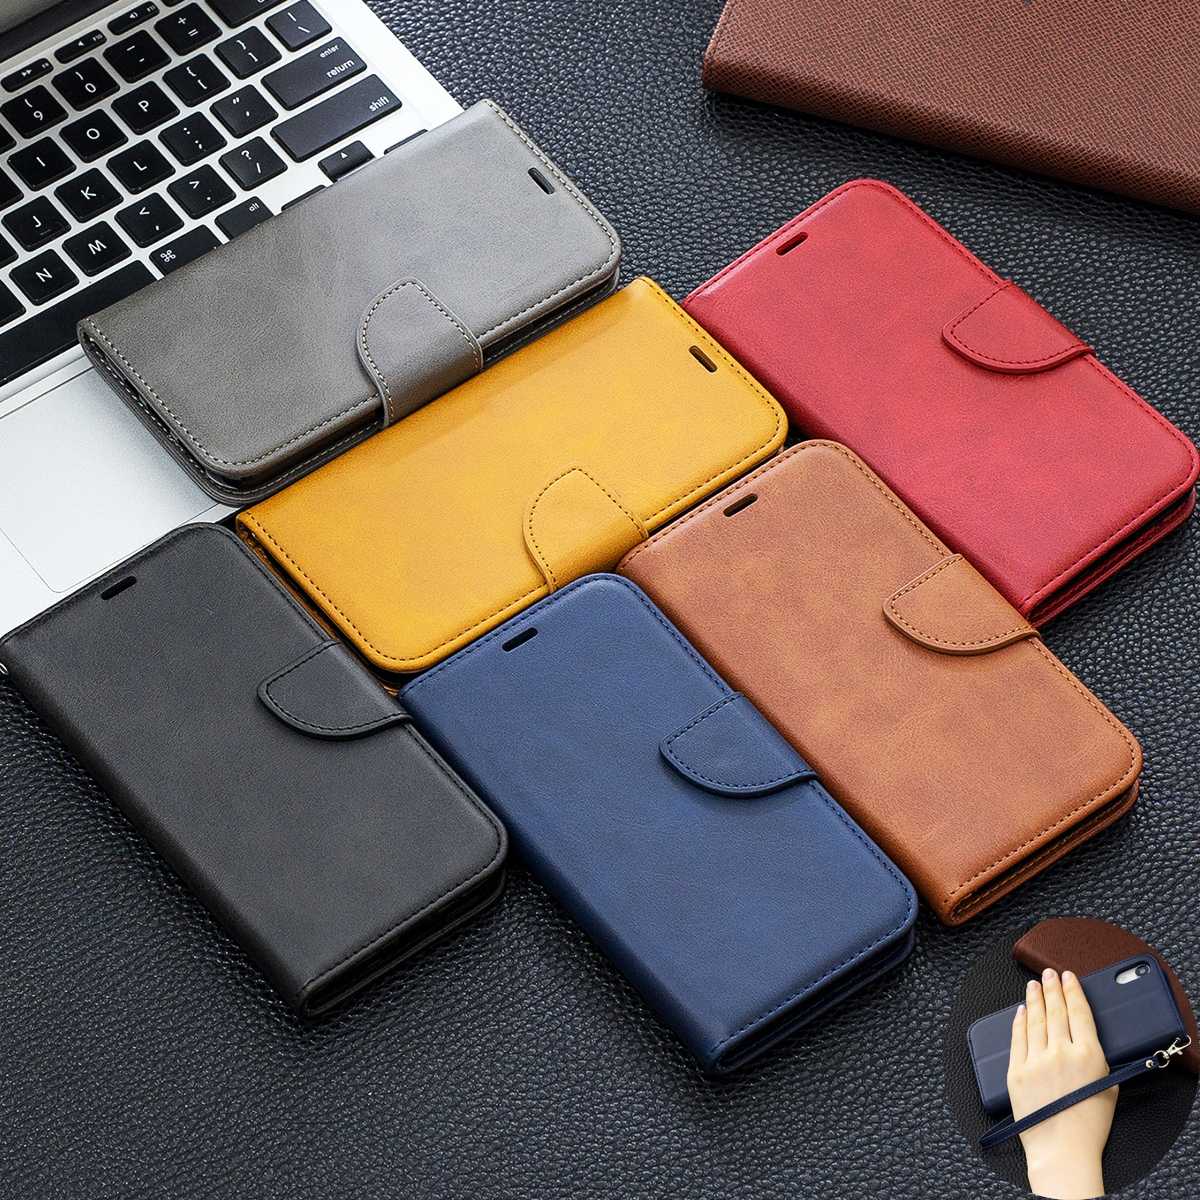 Flip <font><b>Wallet</b></font> Leather <font><b>Case</b></font> on sfor Fundas <font><b>Nokia</b></font> 3 5 6 1 <font><b>Plus</b></font> <font><b>Case</b></font> For Coque <font><b>Nokia</b></font> 2.1 2.2 3.1 3.2 4.2 <font><b>5.1</b></font> 6.1 7.1 Phone <font><b>Case</b></font> Cover image